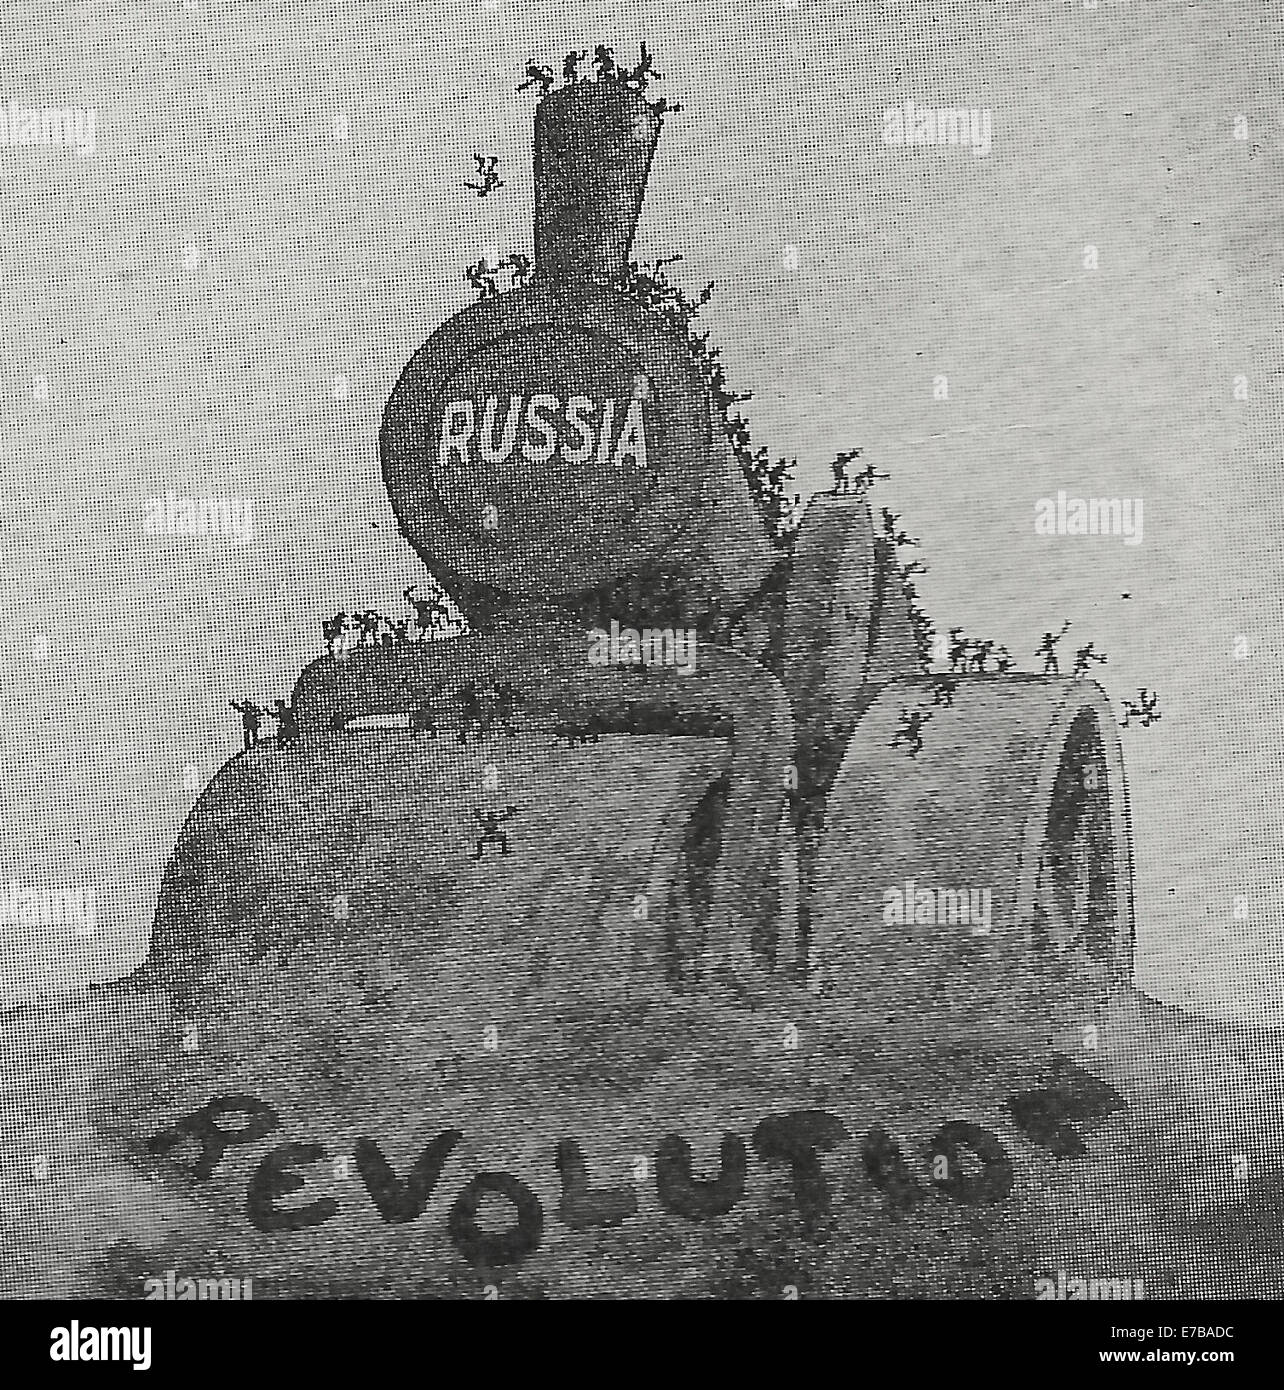 an introduction to the analysis of a tsarist regime in russia The russian revolution was an extraordinary episode in the history of russia the source of the revolution, its nature and consequences, are complex and understanding those aspects have dominated the study of twentieth century europe.